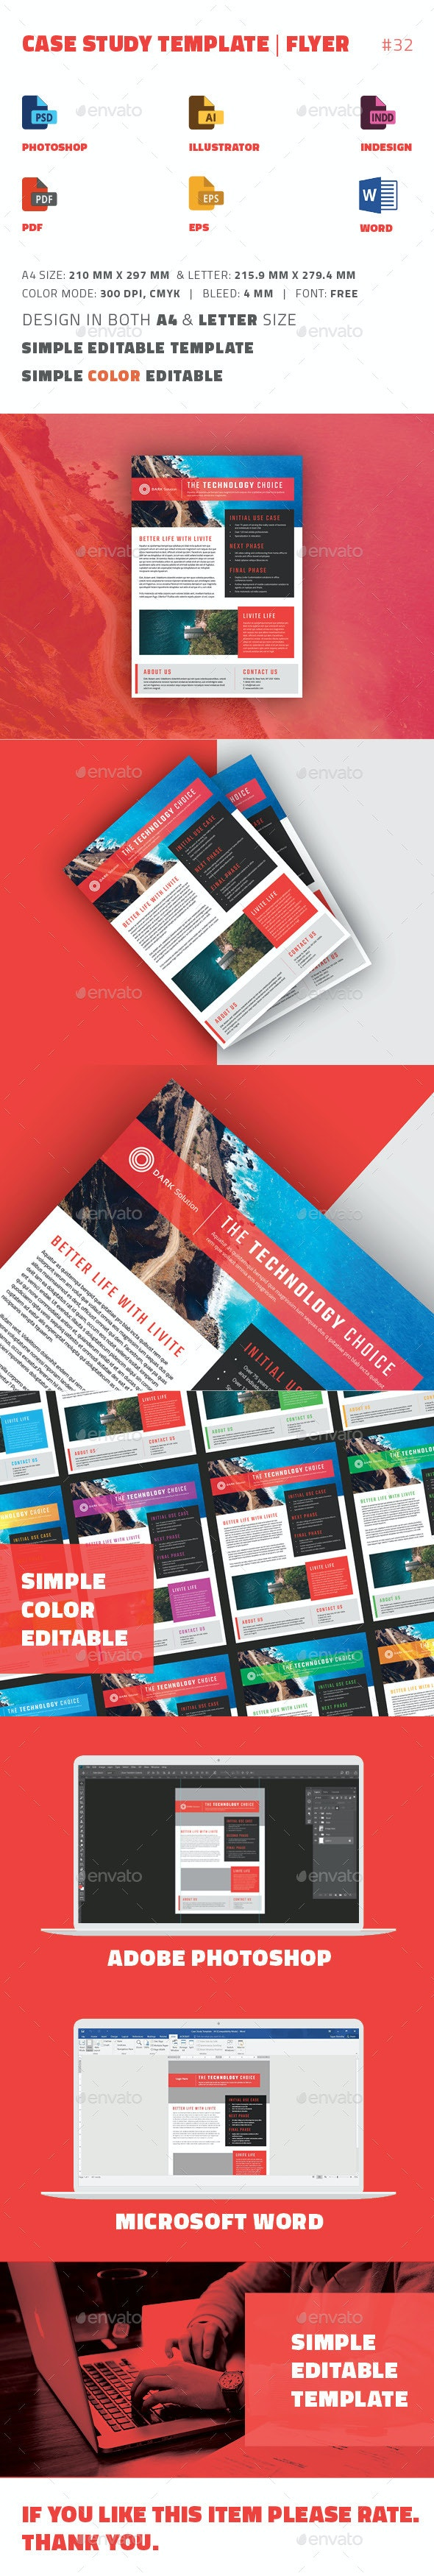 Case Study Template   Flyer - Newsletters Print Templates